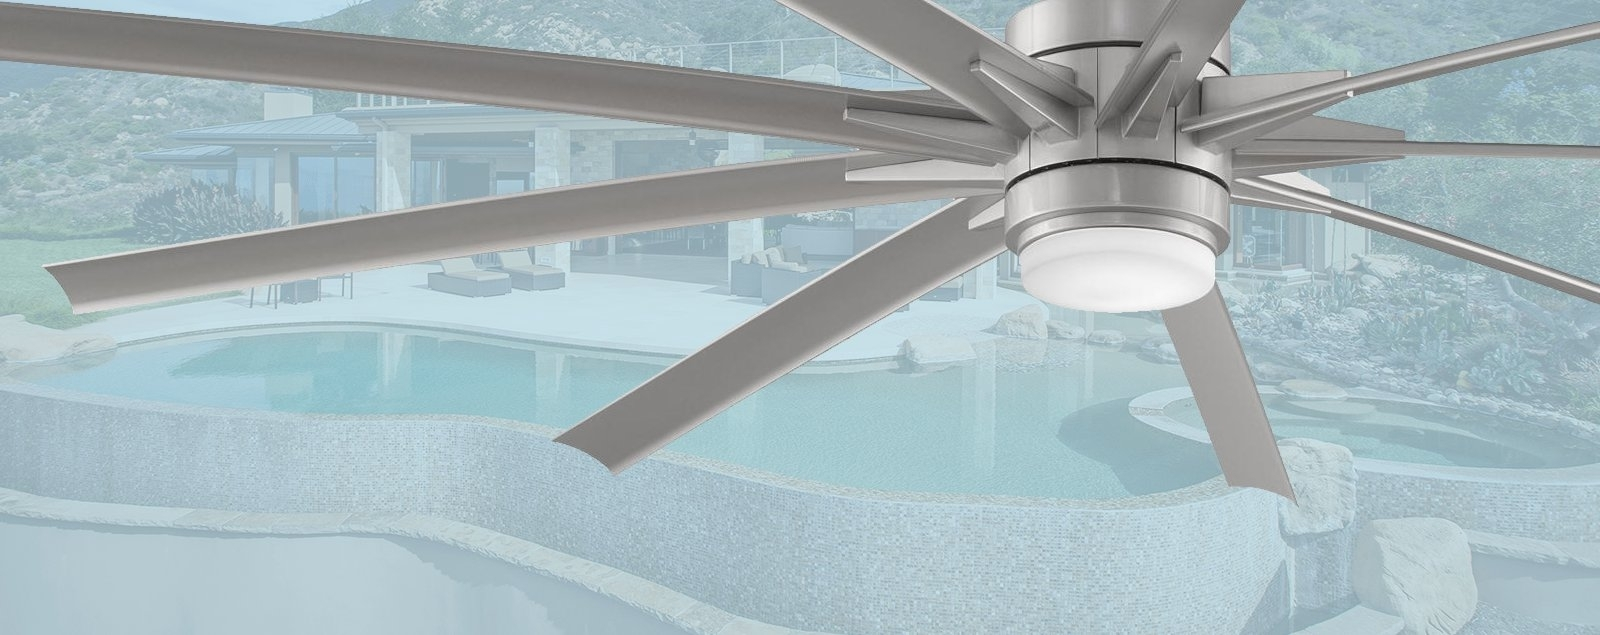 """Recent Large Outdoor Ceiling Fans With Lights Regarding Large Outdoor Ceiling Fans – Outdoor Fans Over 60"""" In Diameter (View 15 of 20)"""